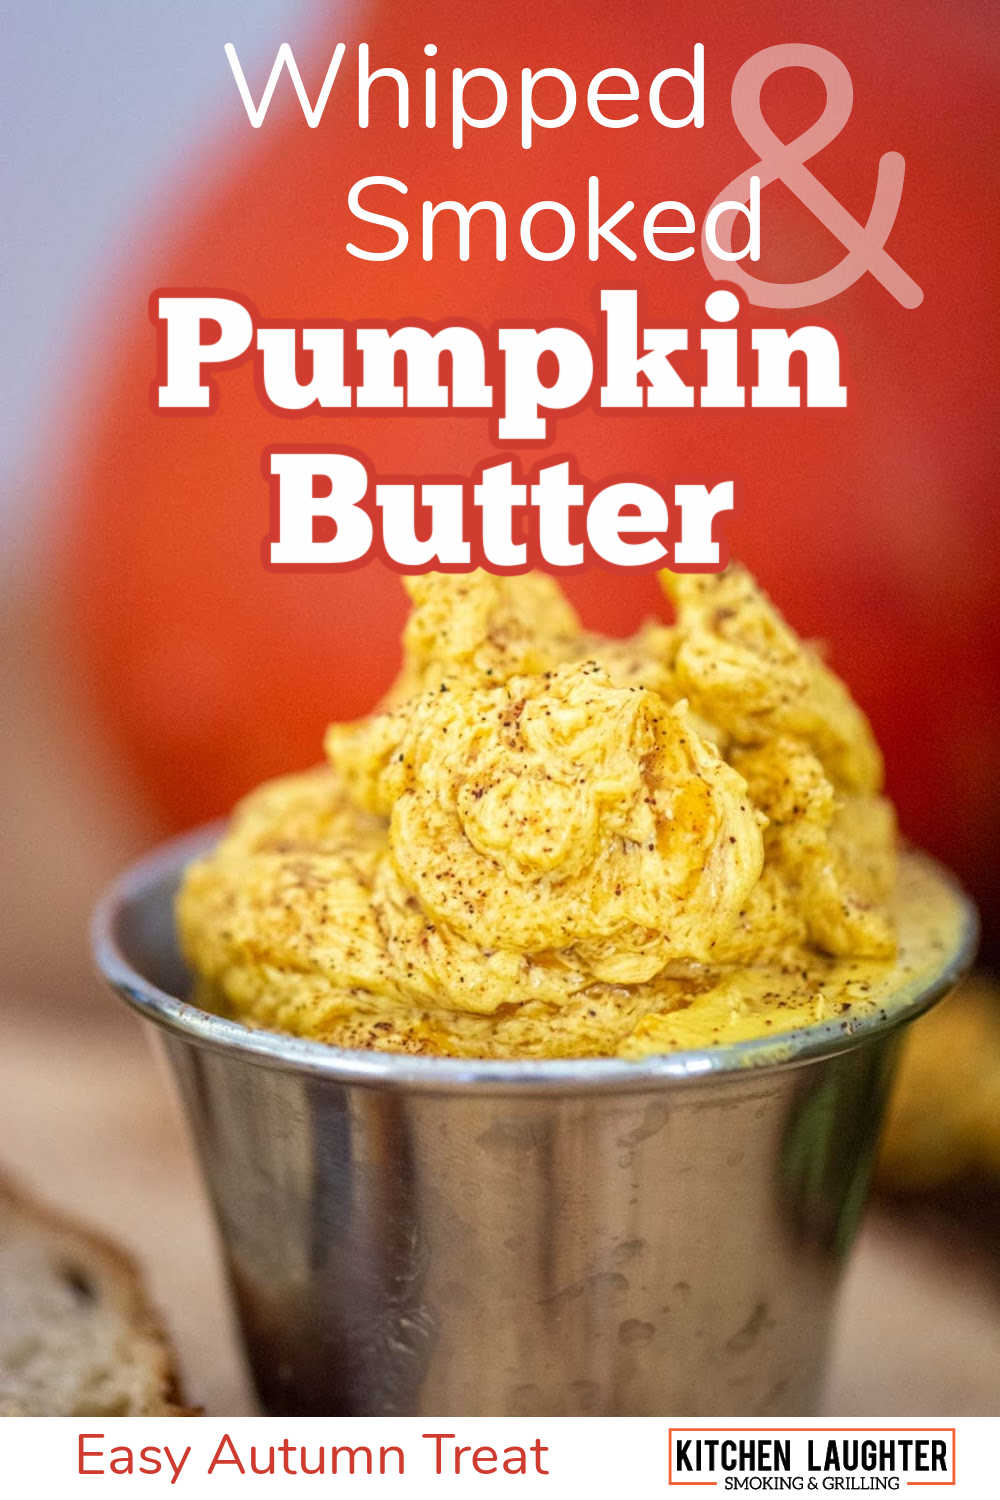 Whipped Smoked Pumpkin Butter {10 Minutes}